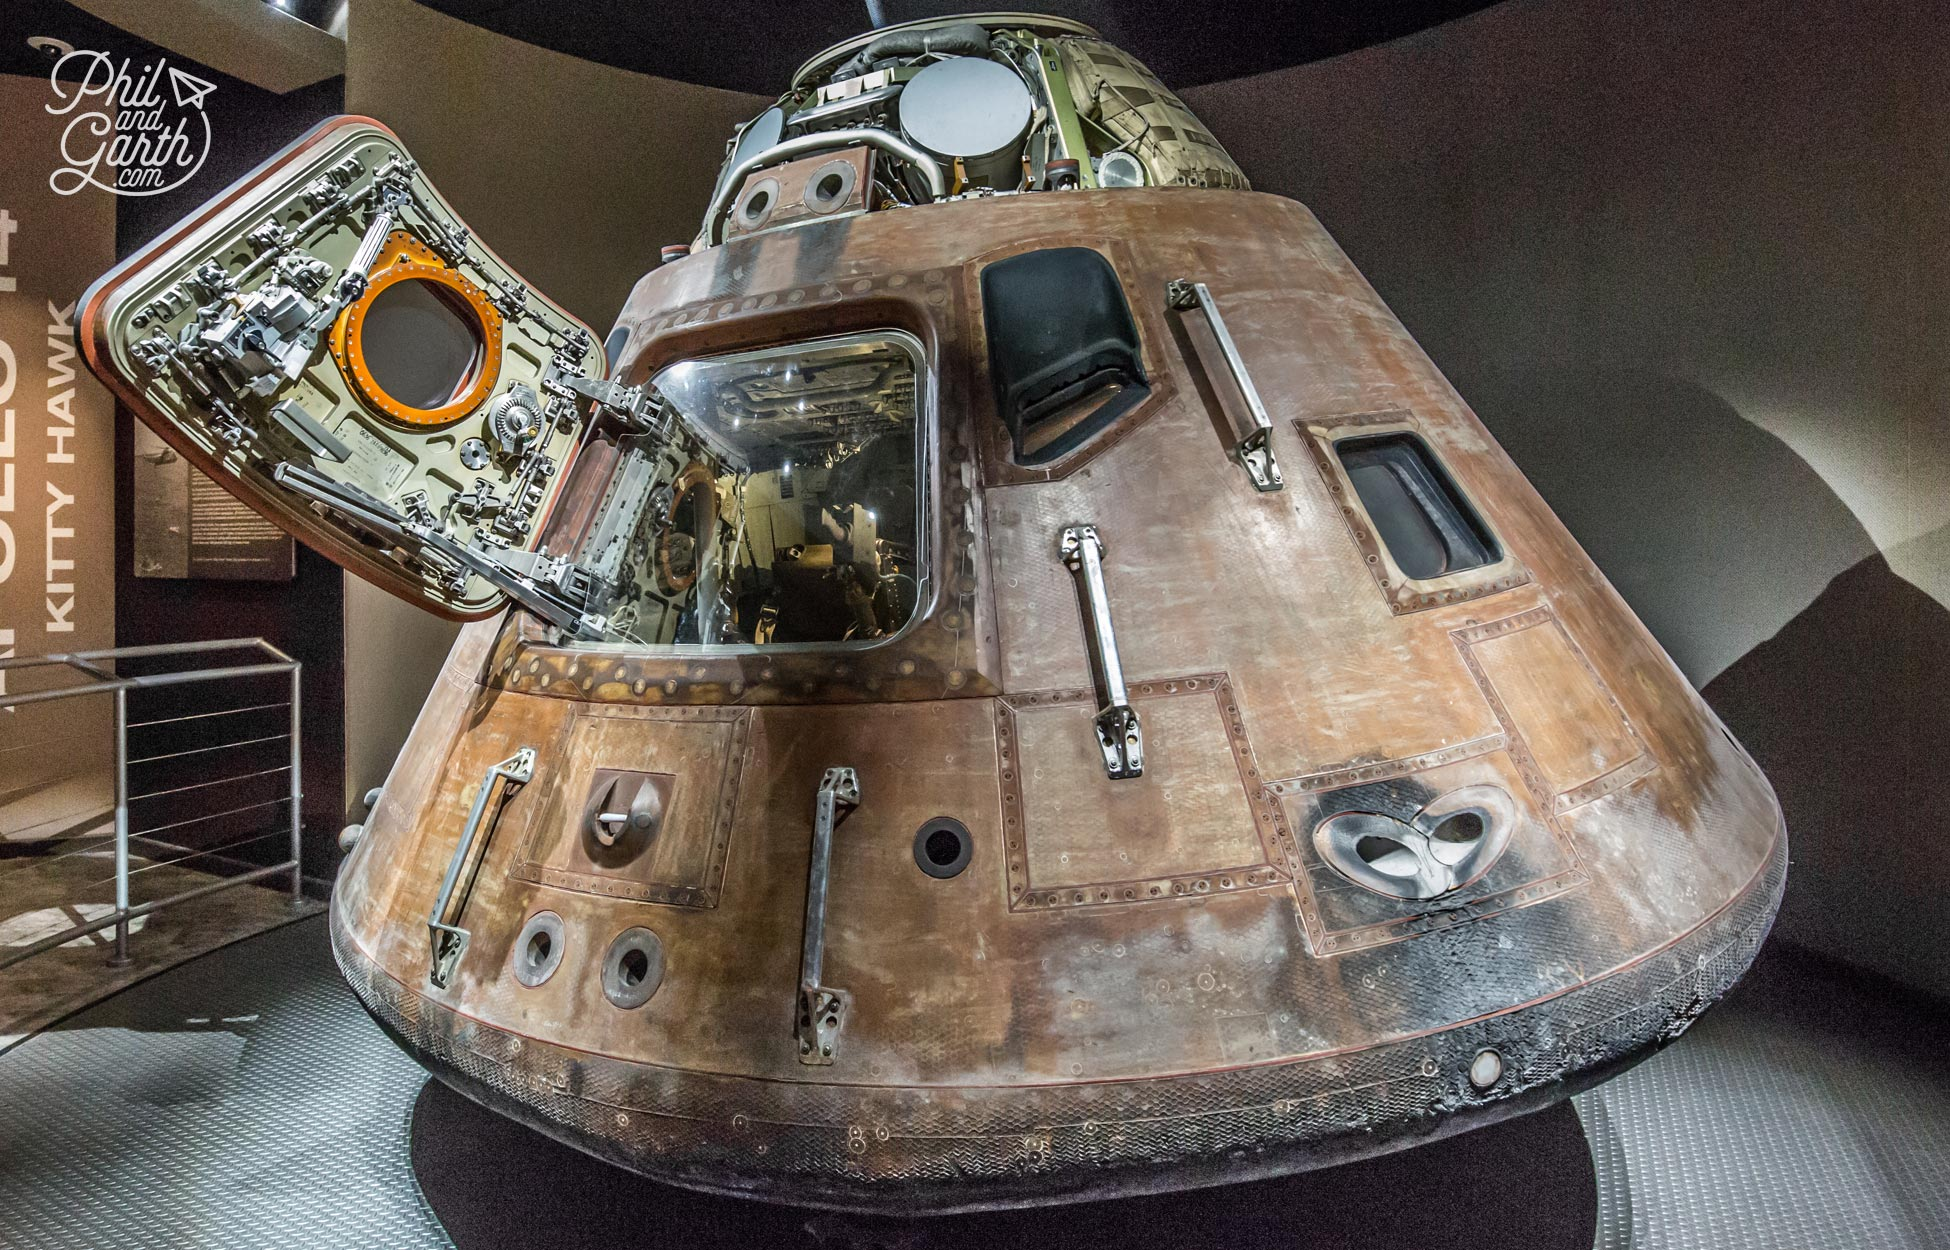 The Apollo 14 command module